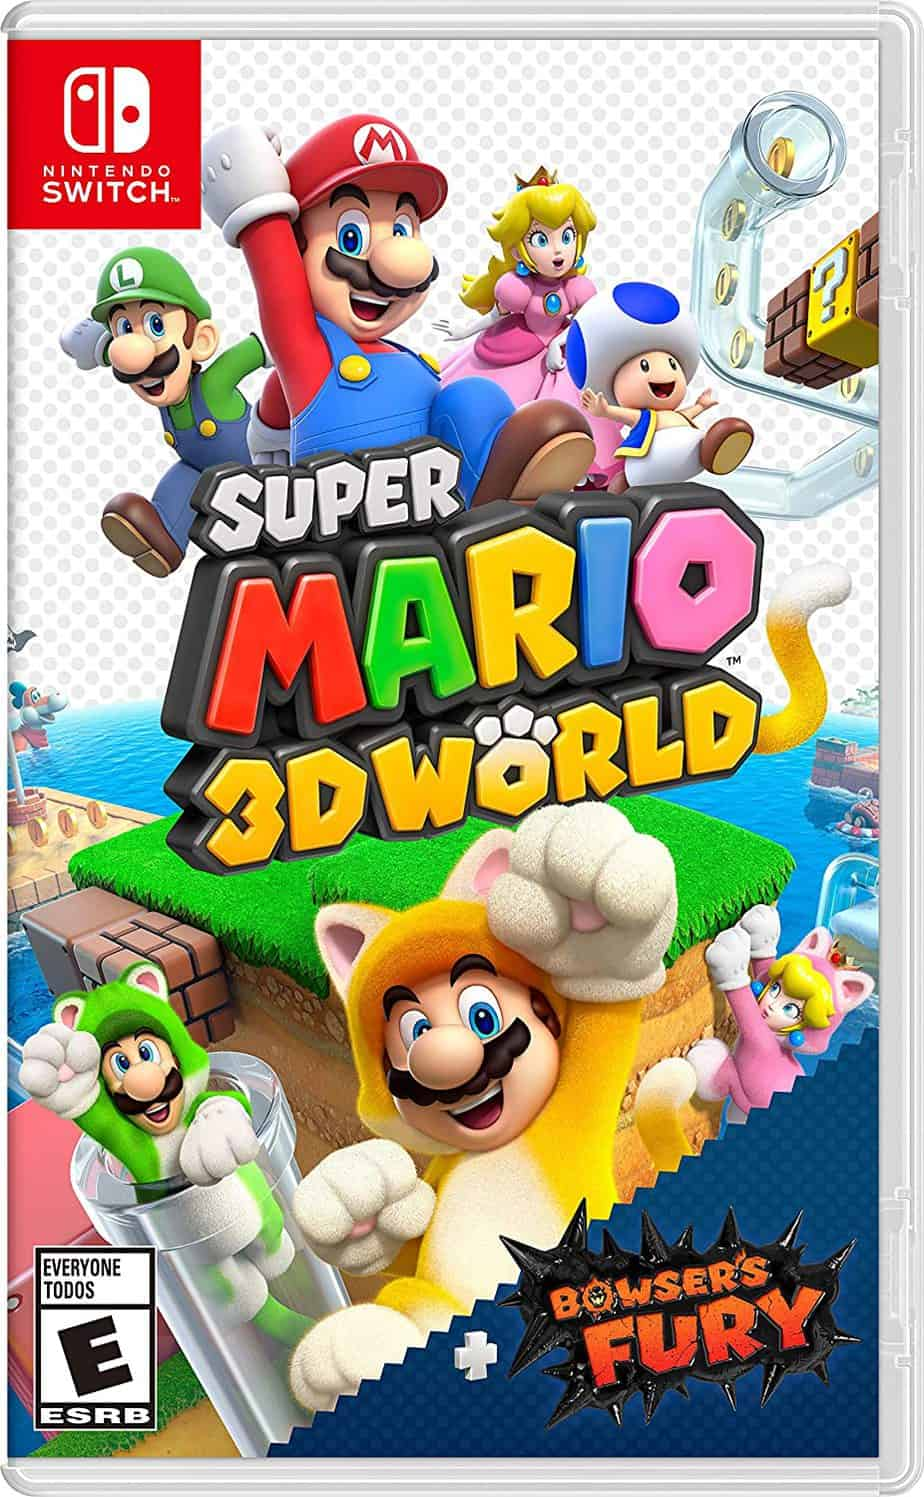 Best Mario multiplayer games - Super Mario 3D World + Bowsers Fury